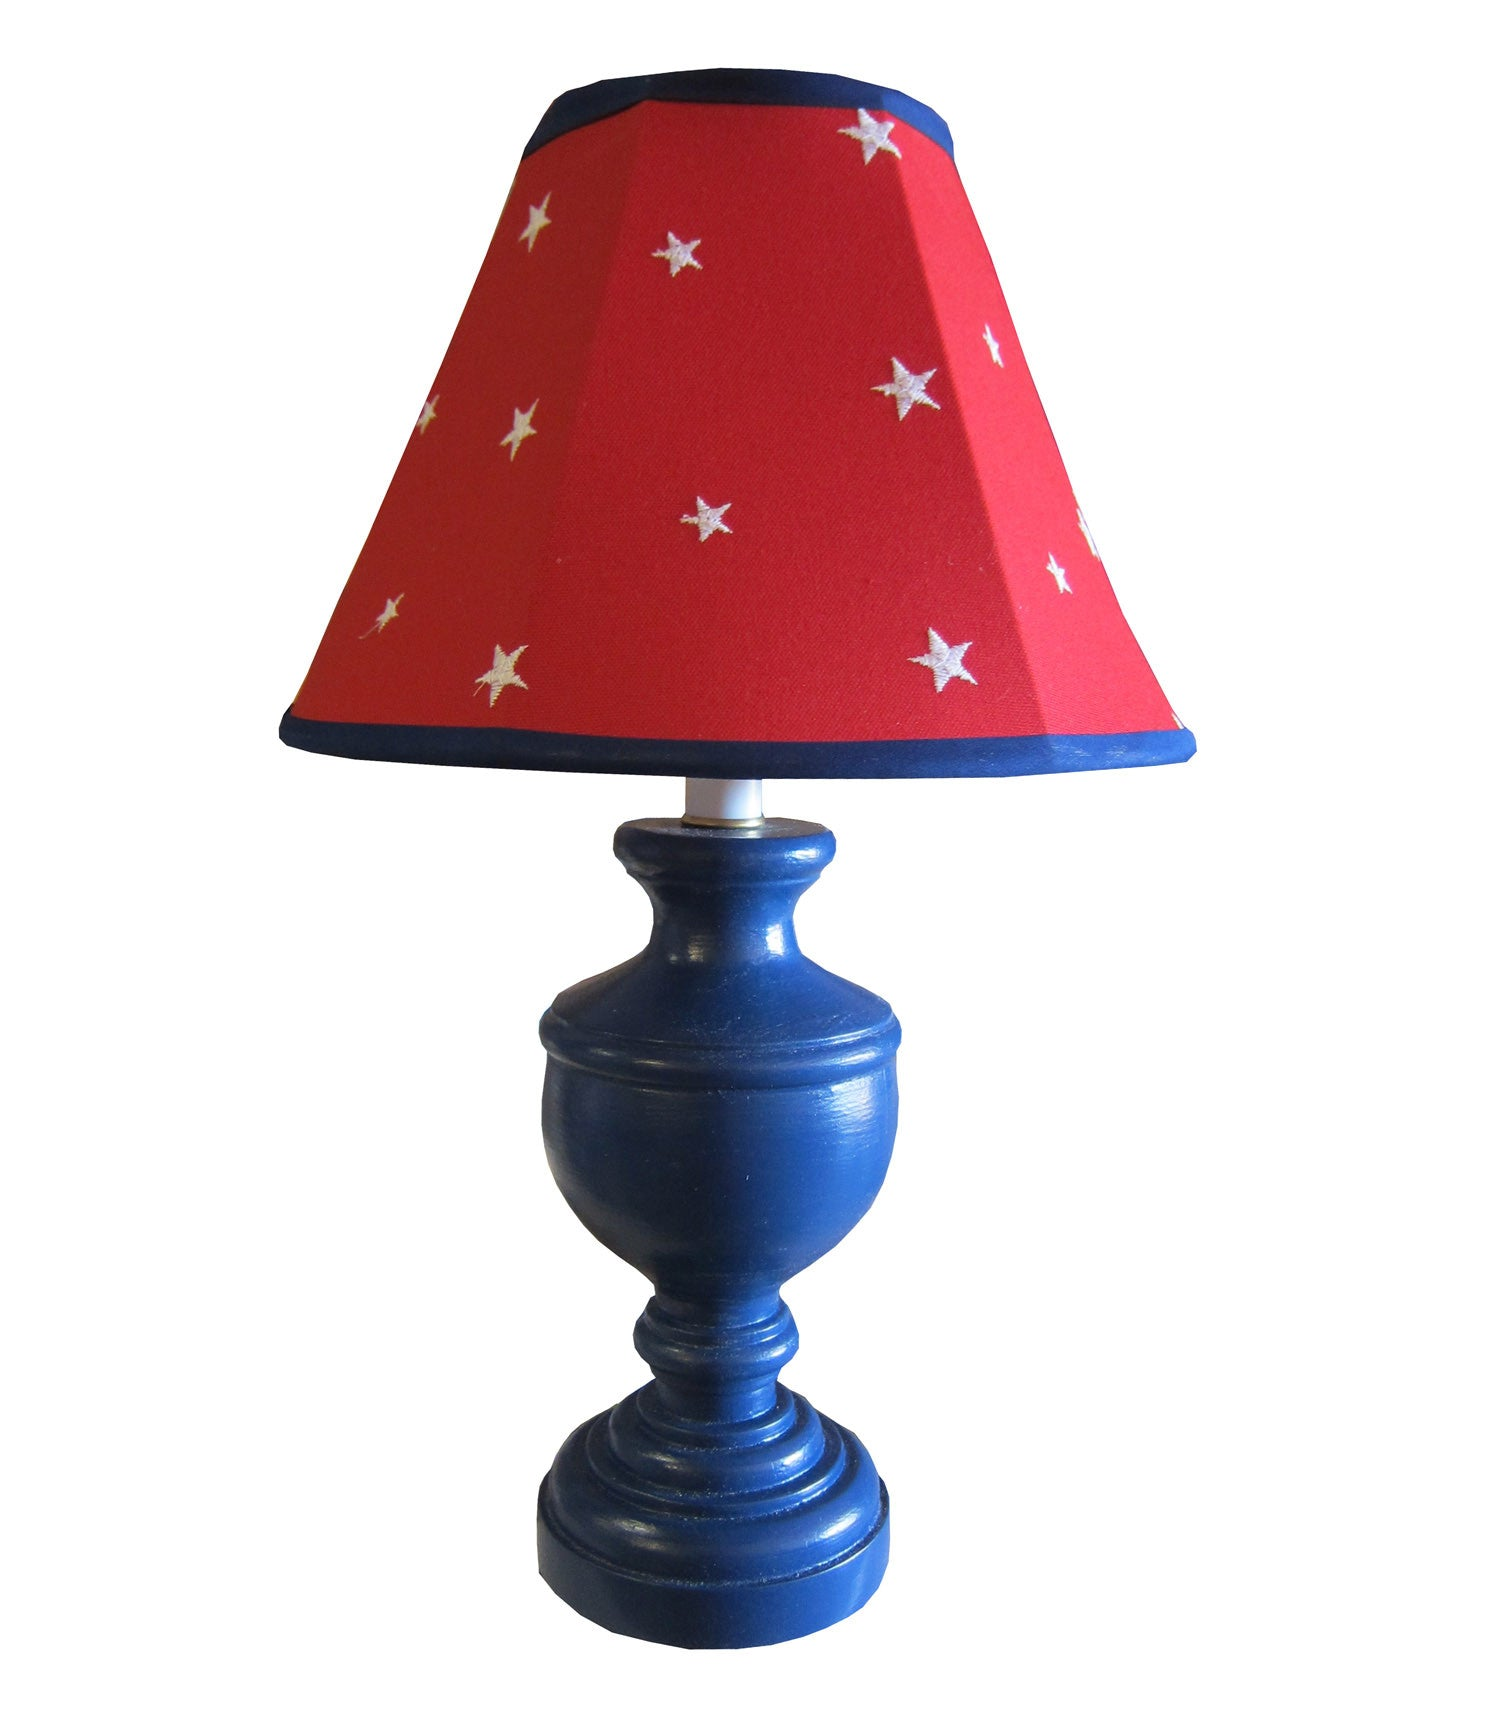 Boys red star lamp  Daydream urn